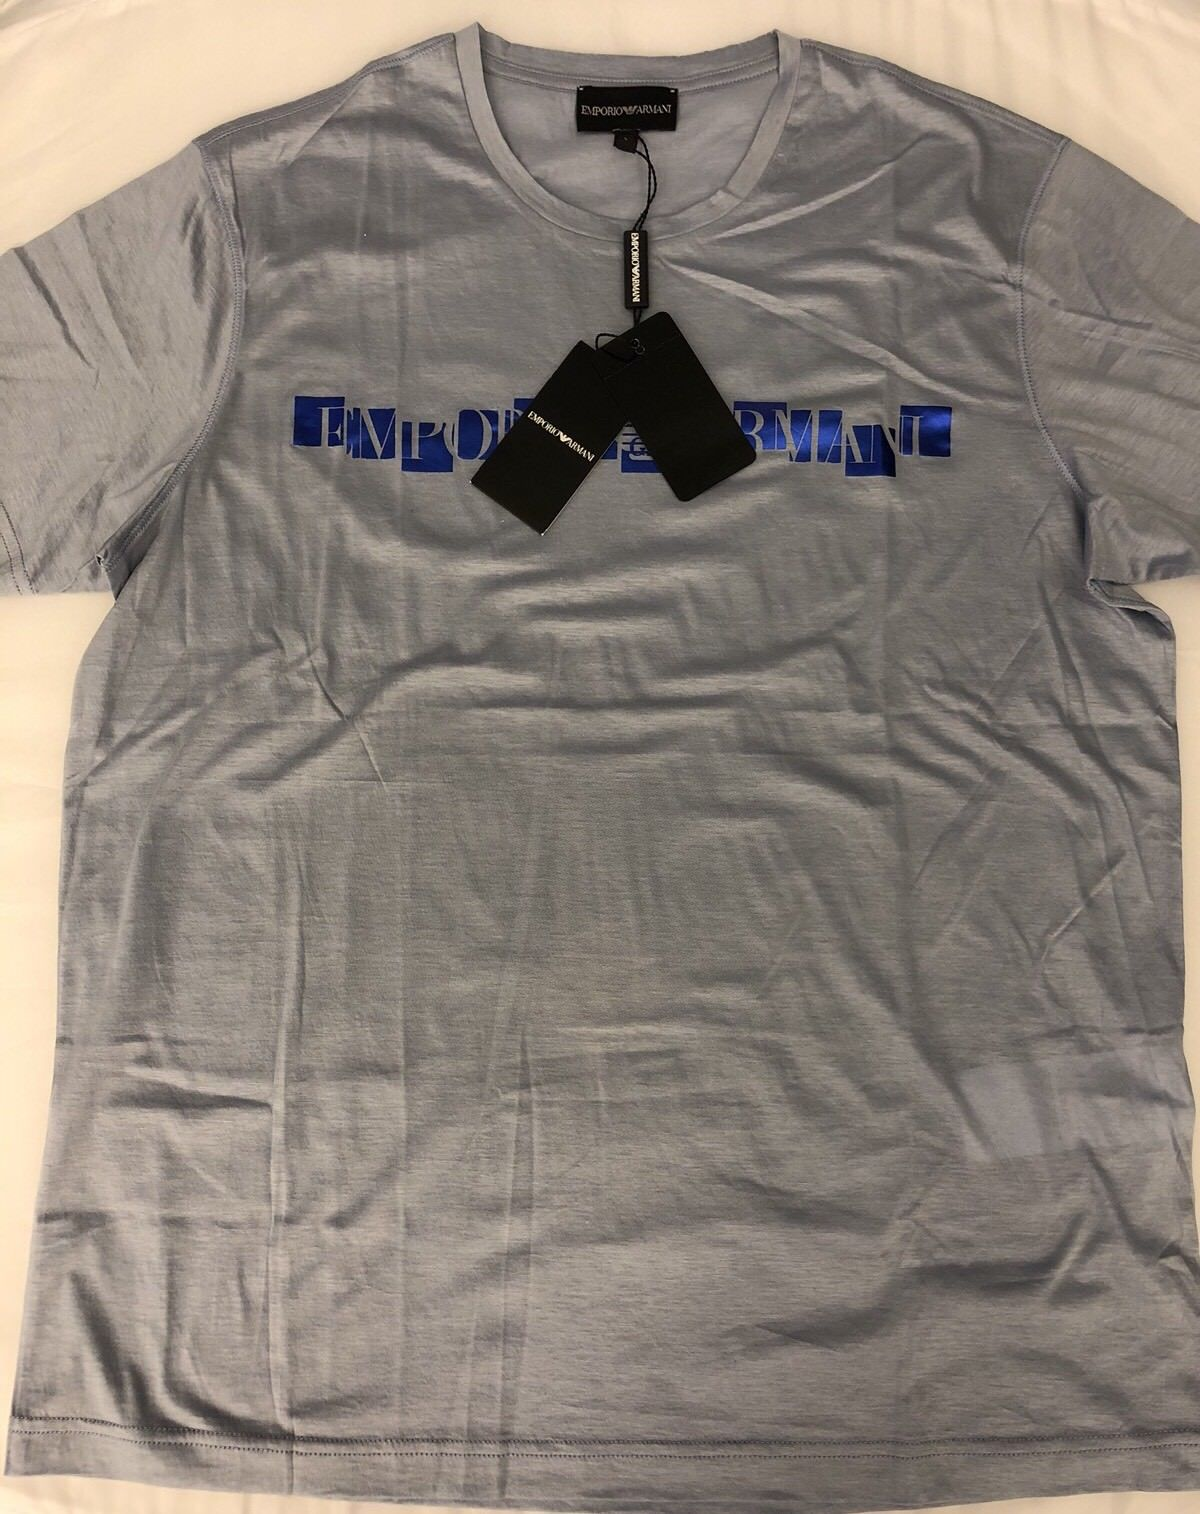 NWT $175 Emporio Armani Light Blue Short Sleeve T-Shirt Medium APH03 - BAYSUPERSTORE